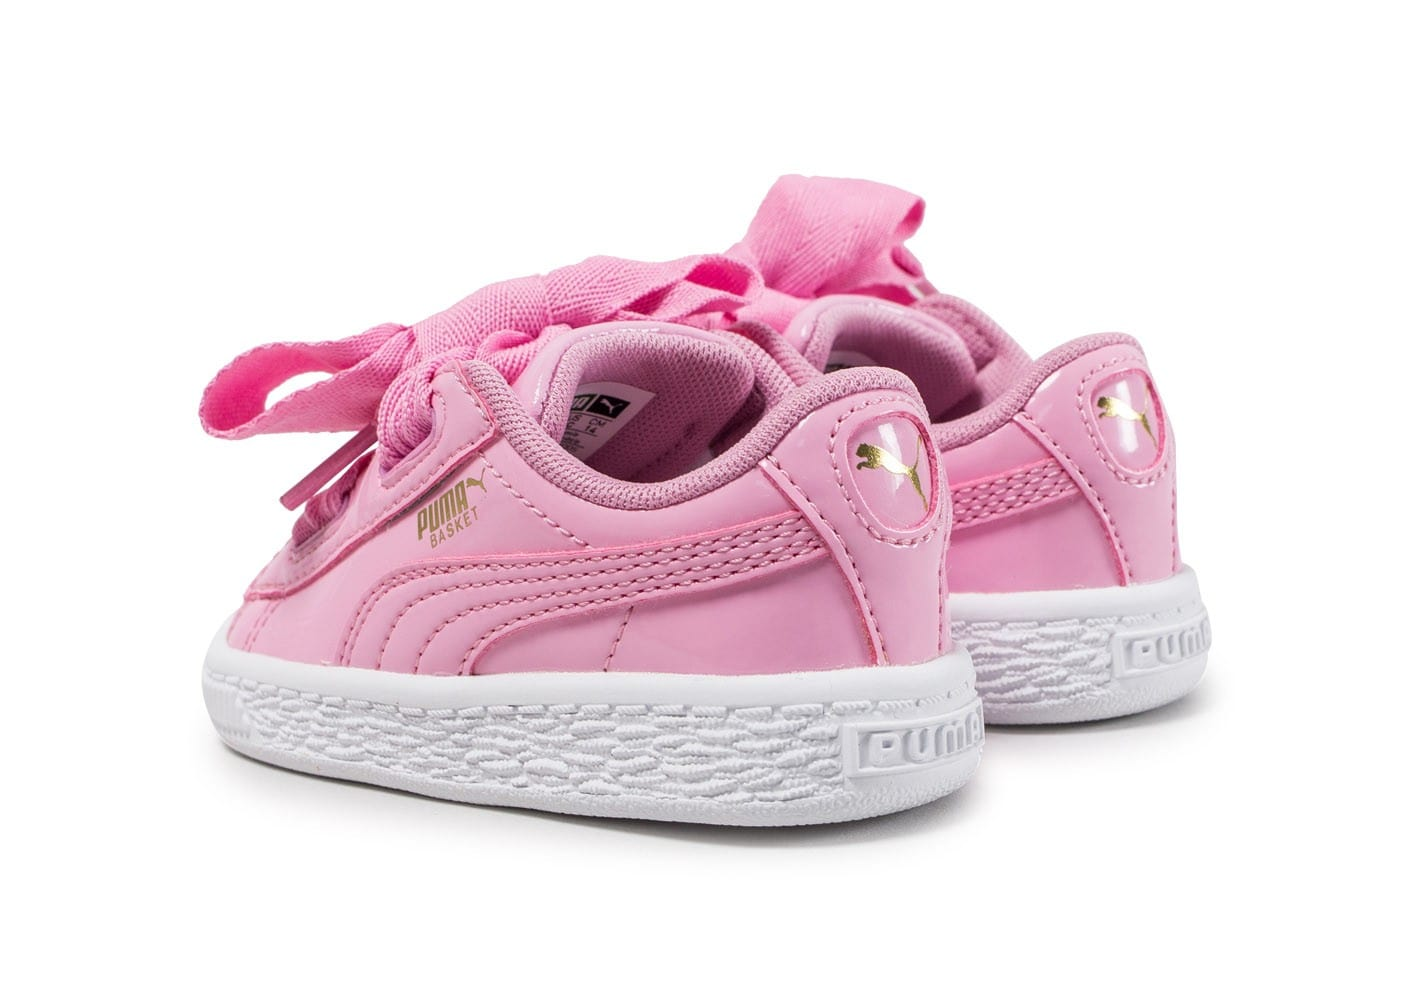 puma basket heart patent b b rose chaussures black friday chausport. Black Bedroom Furniture Sets. Home Design Ideas